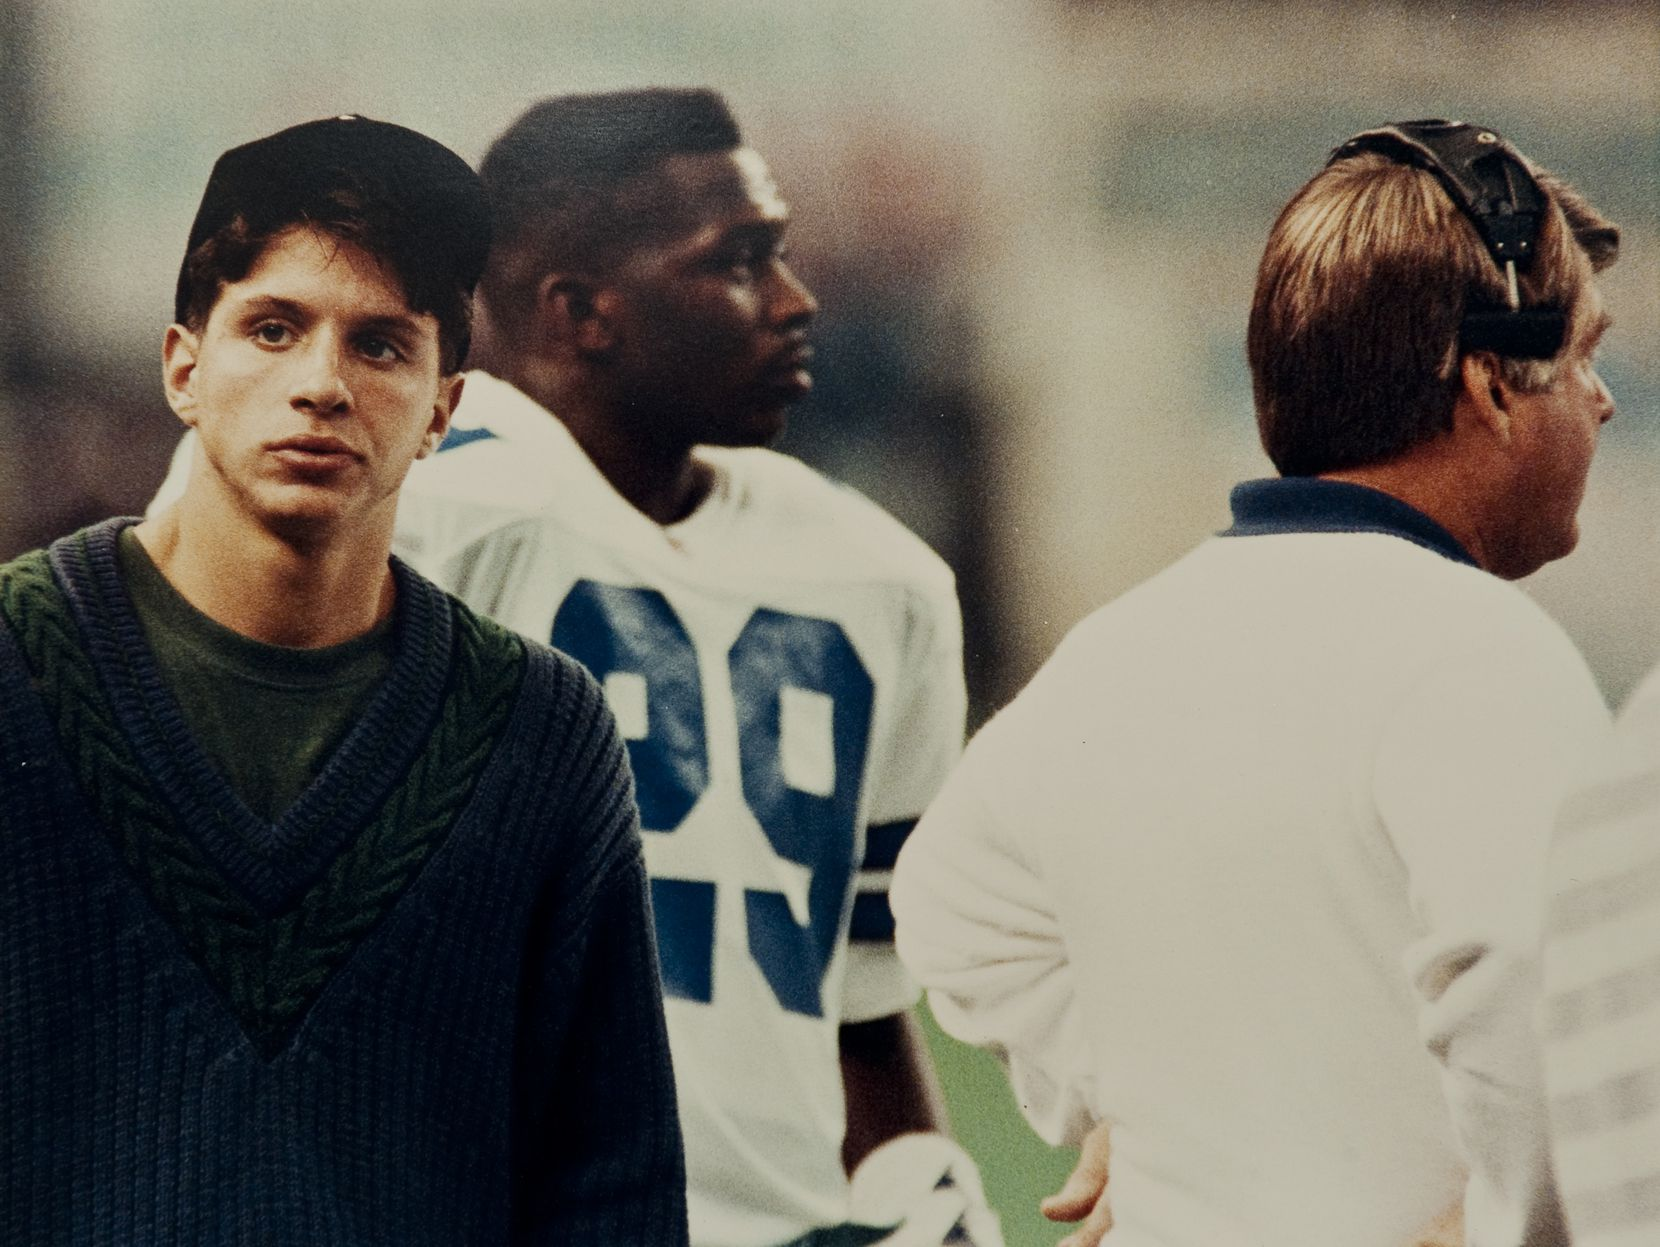 A copy photograph of Damon West (left) standing on the sidelines with the Dallas Cowboys' Kenny Gant (center) and Jimmy Johnson (right) during the Cowboys' game against the Houston Oilers on Nov. 10, 1991, in the Astrodome in Houston.